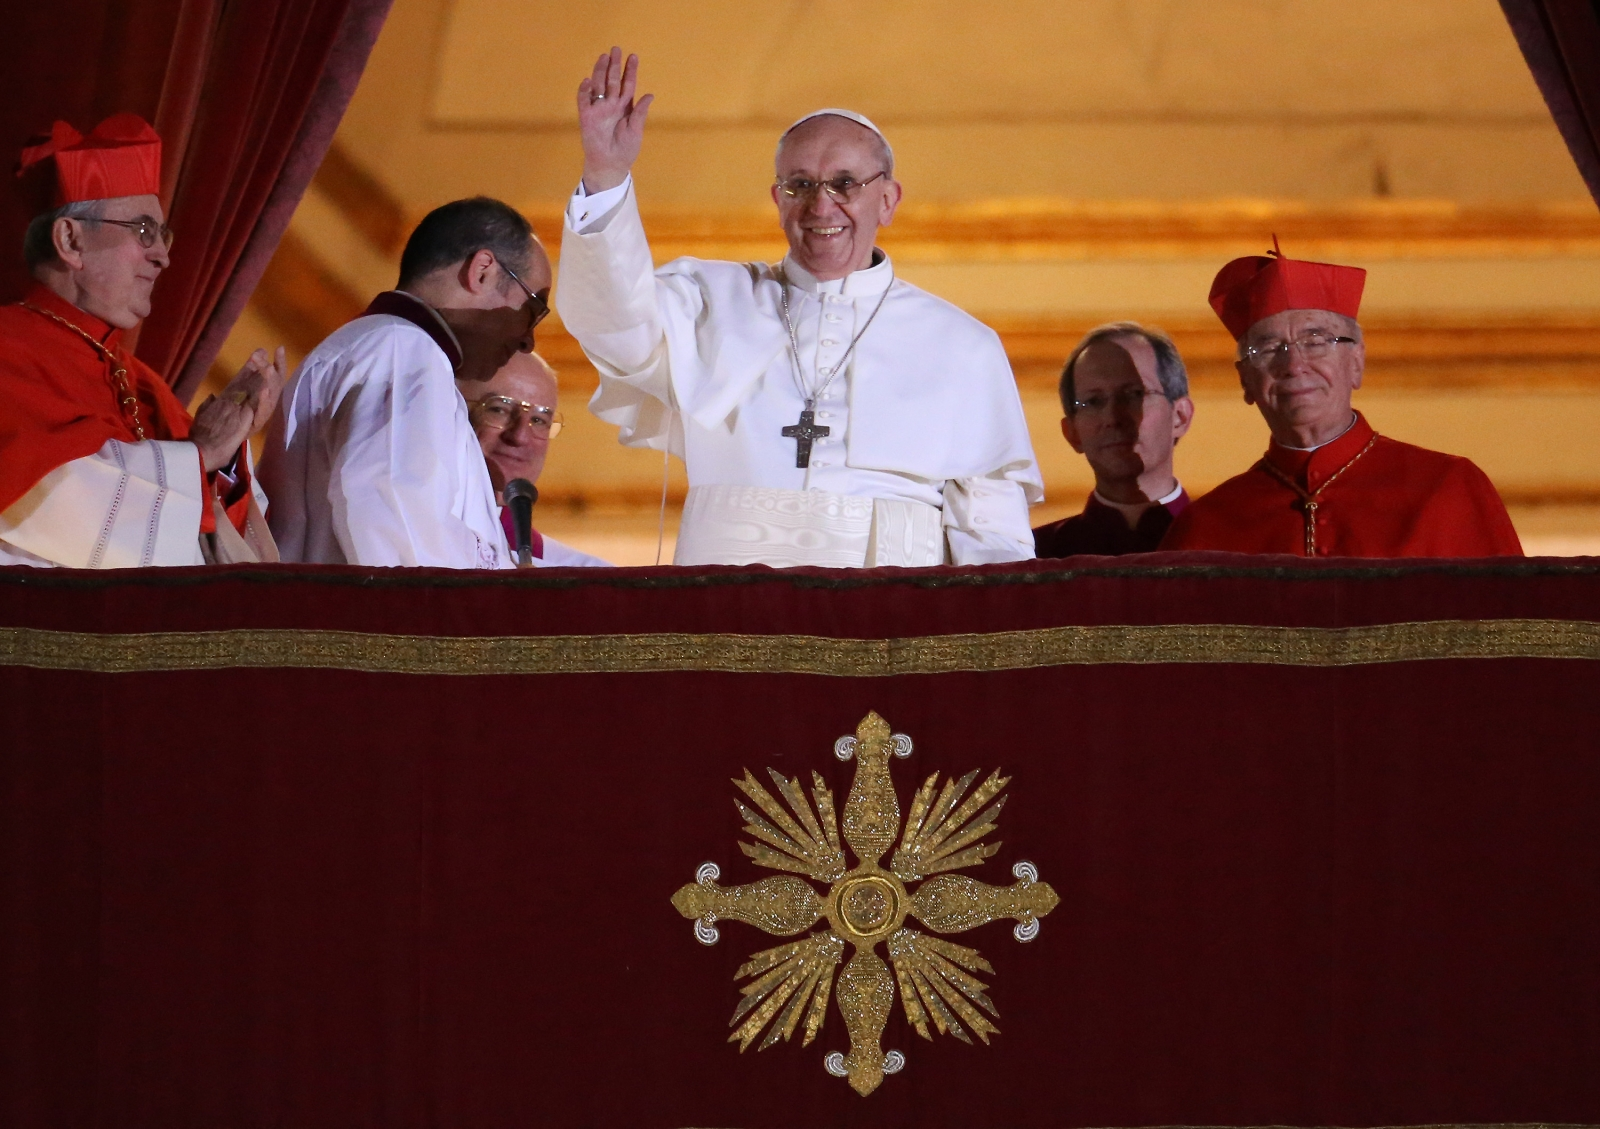 Pope Francis I on the balcony of St Peter's Basilica. It is feared he has become a target for Isis militants. (Getty)